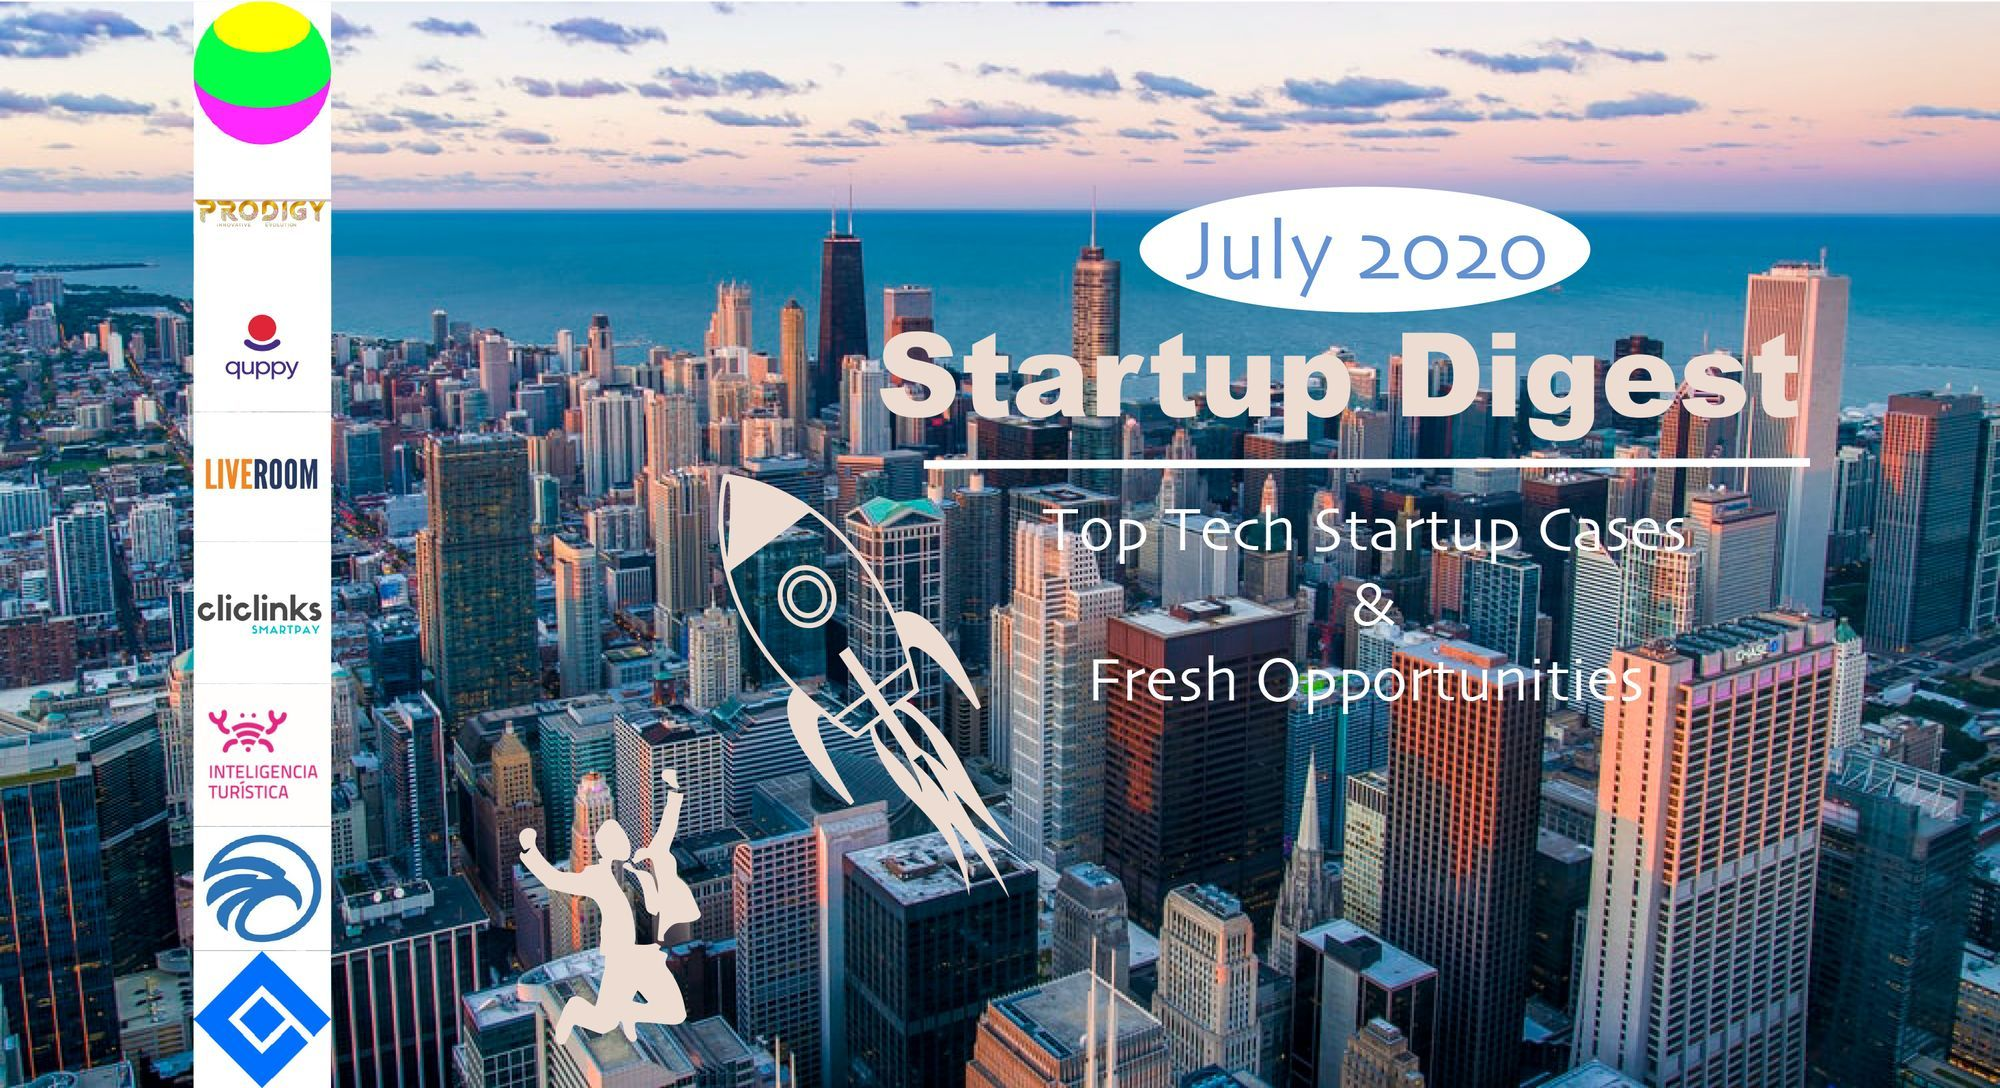 July 2020 Startup Digest Top Tech Startup Cases & Fresh Opportunities